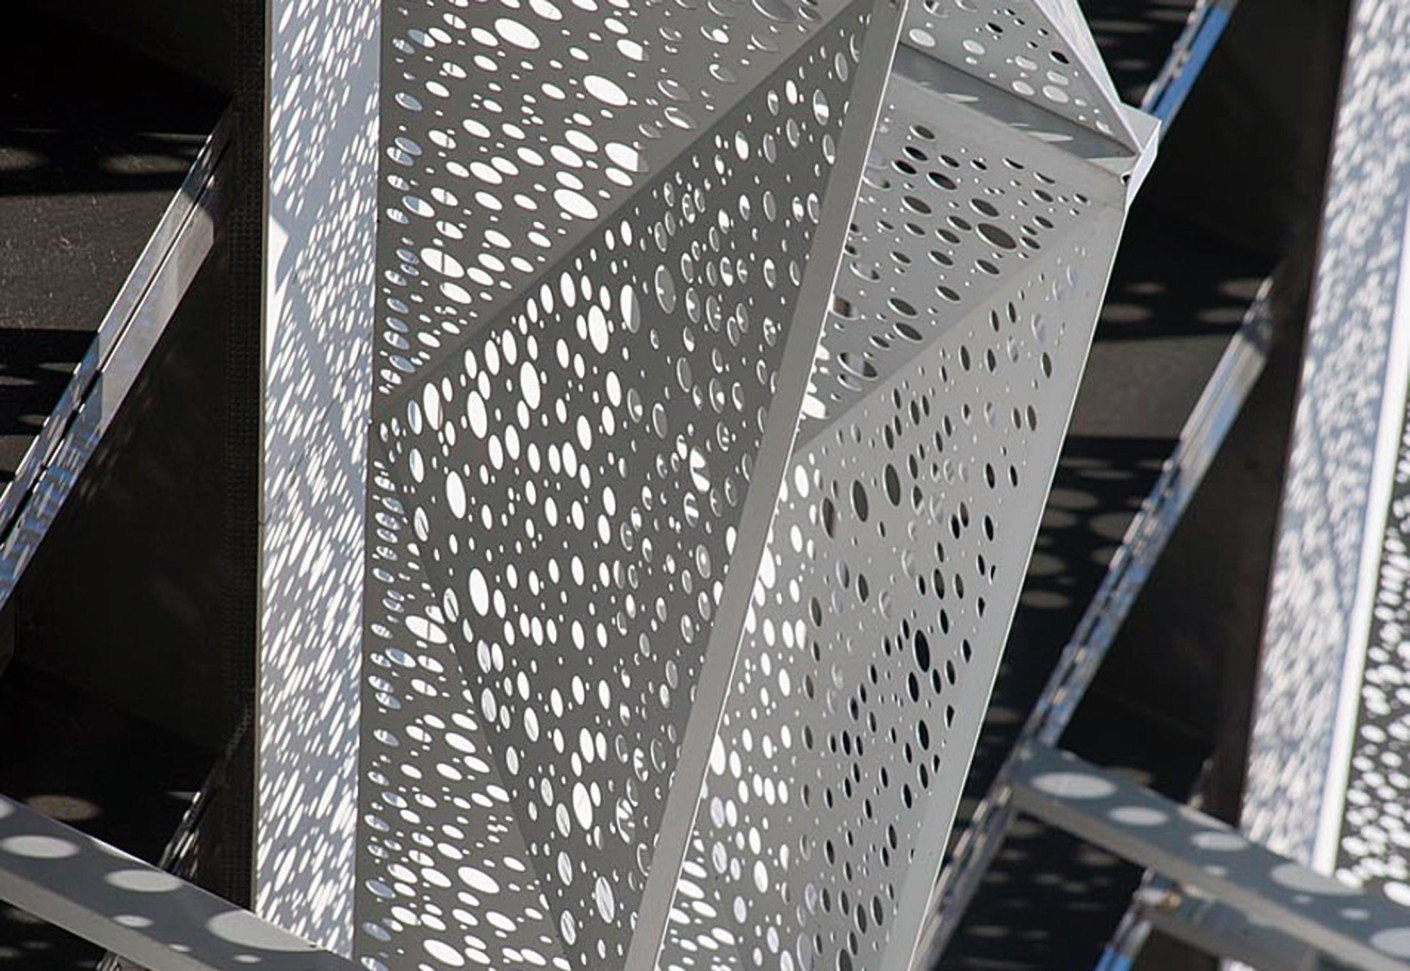 Perforated Cladding Lyc 233 E Polyvalent Saint Romain By